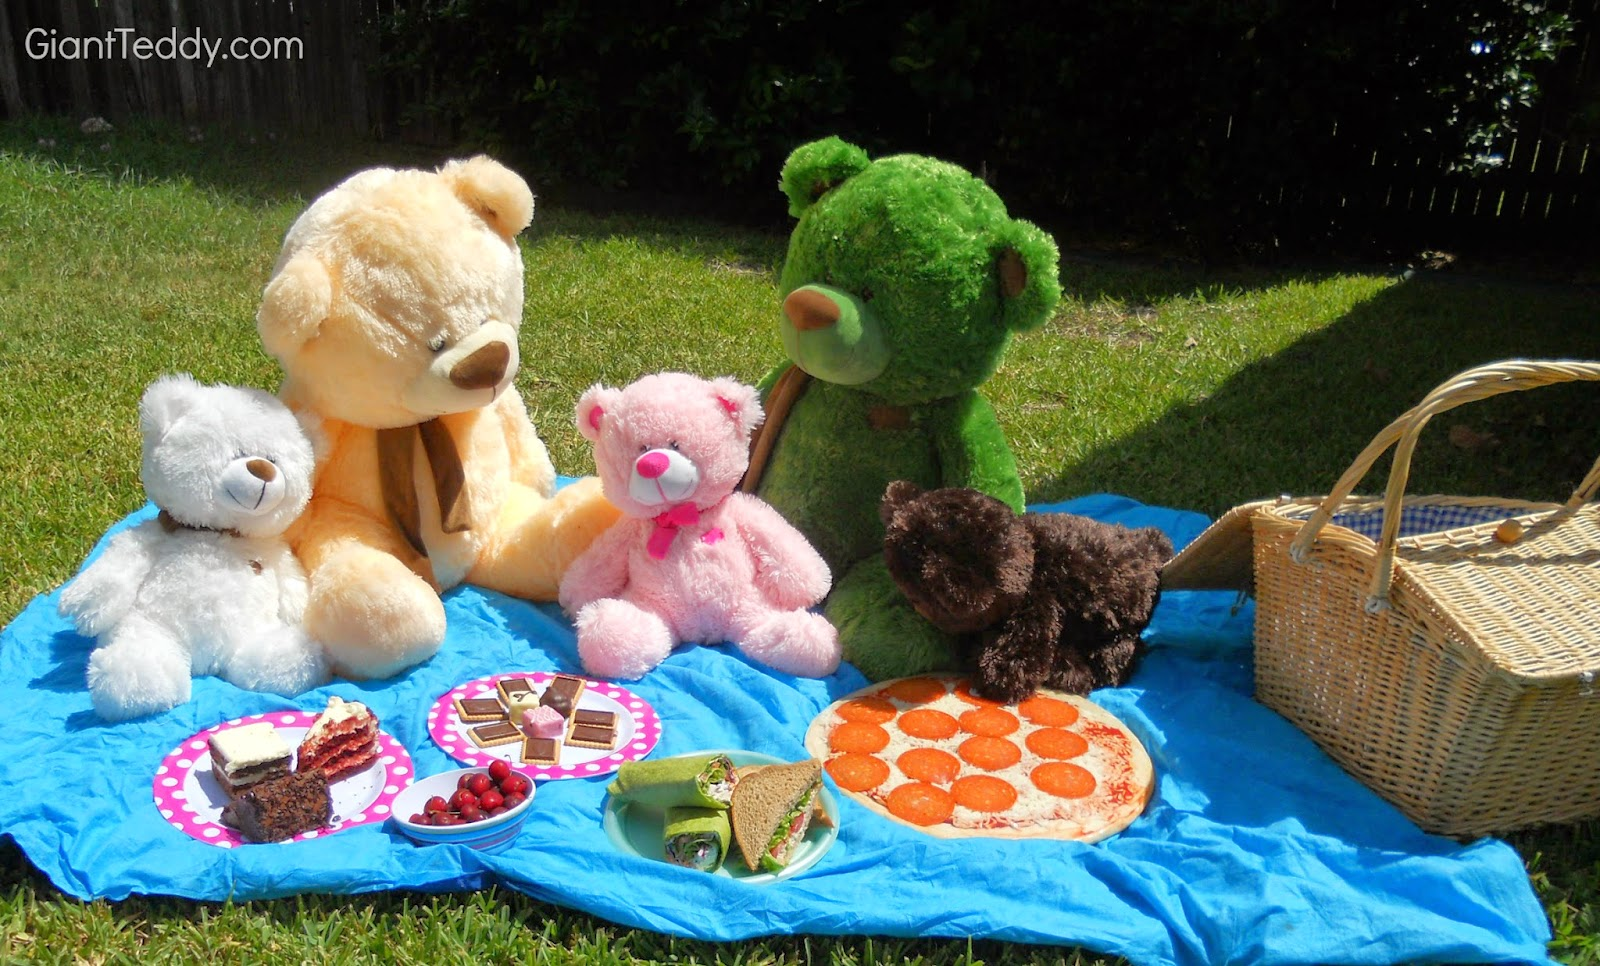 Enjoying Teddy Bear Picnic Day with my family